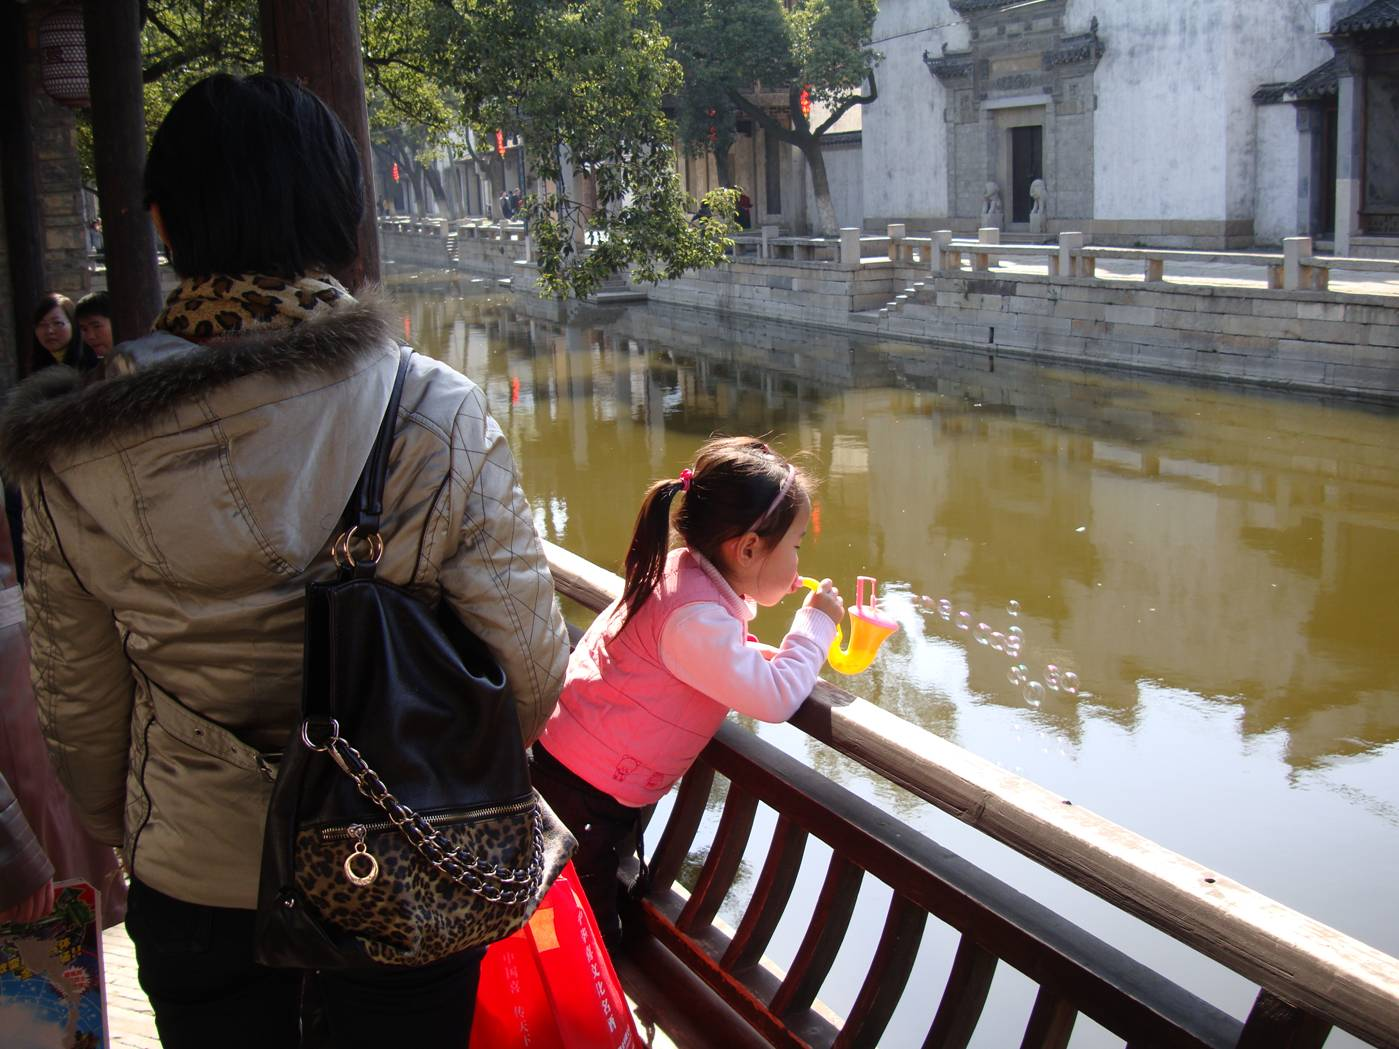 Picture:  A child blows bubbles over the canal.  Wuxi, China